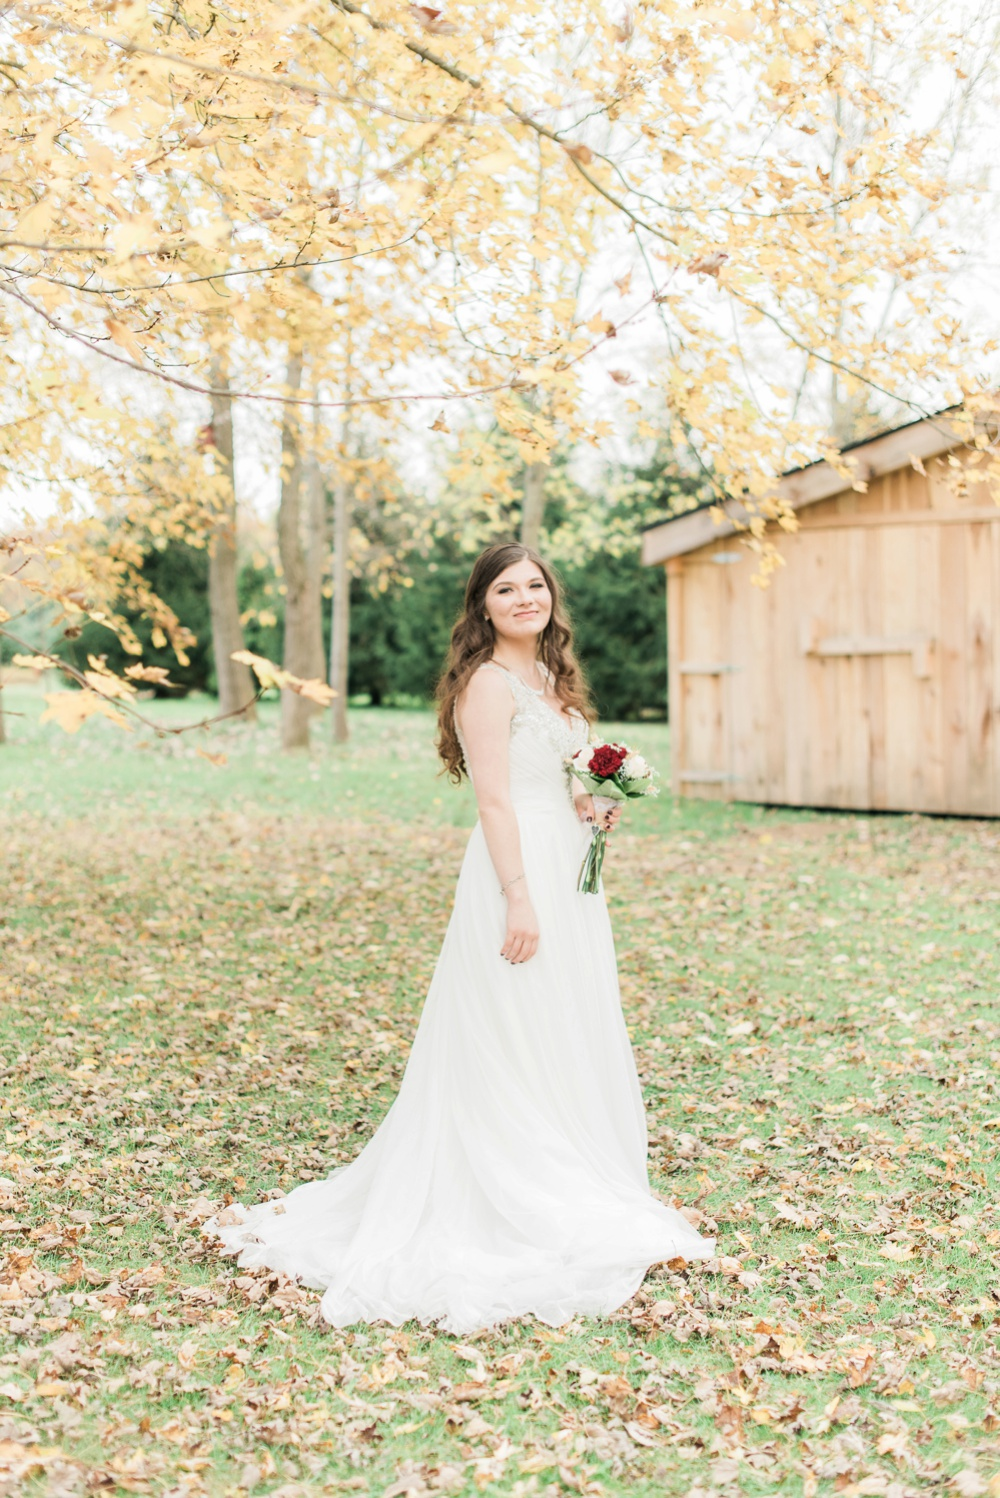 ricciardis-tree-farm-wedding-wadsworth-ohio-lauren-ryan_0148.jpg